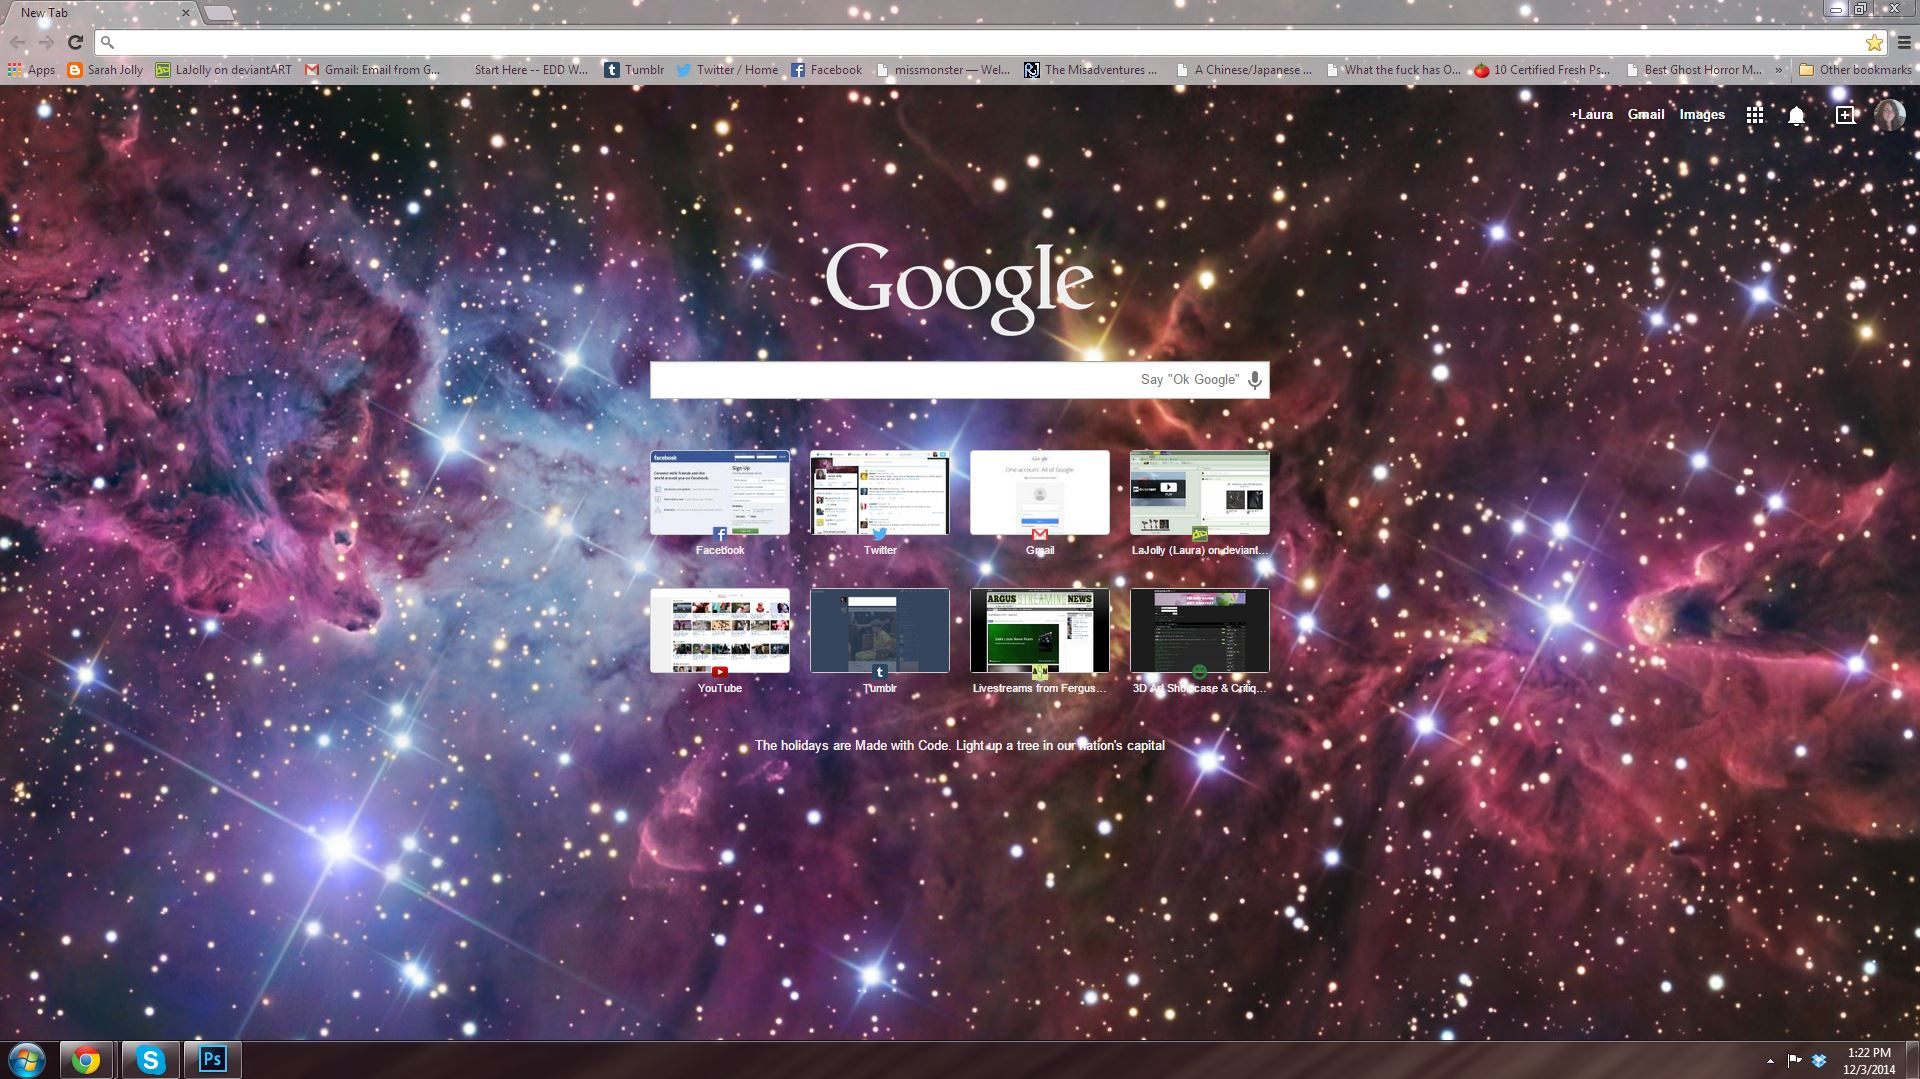 Google chrome space theme by lajolly google chrome space theme by lajolly